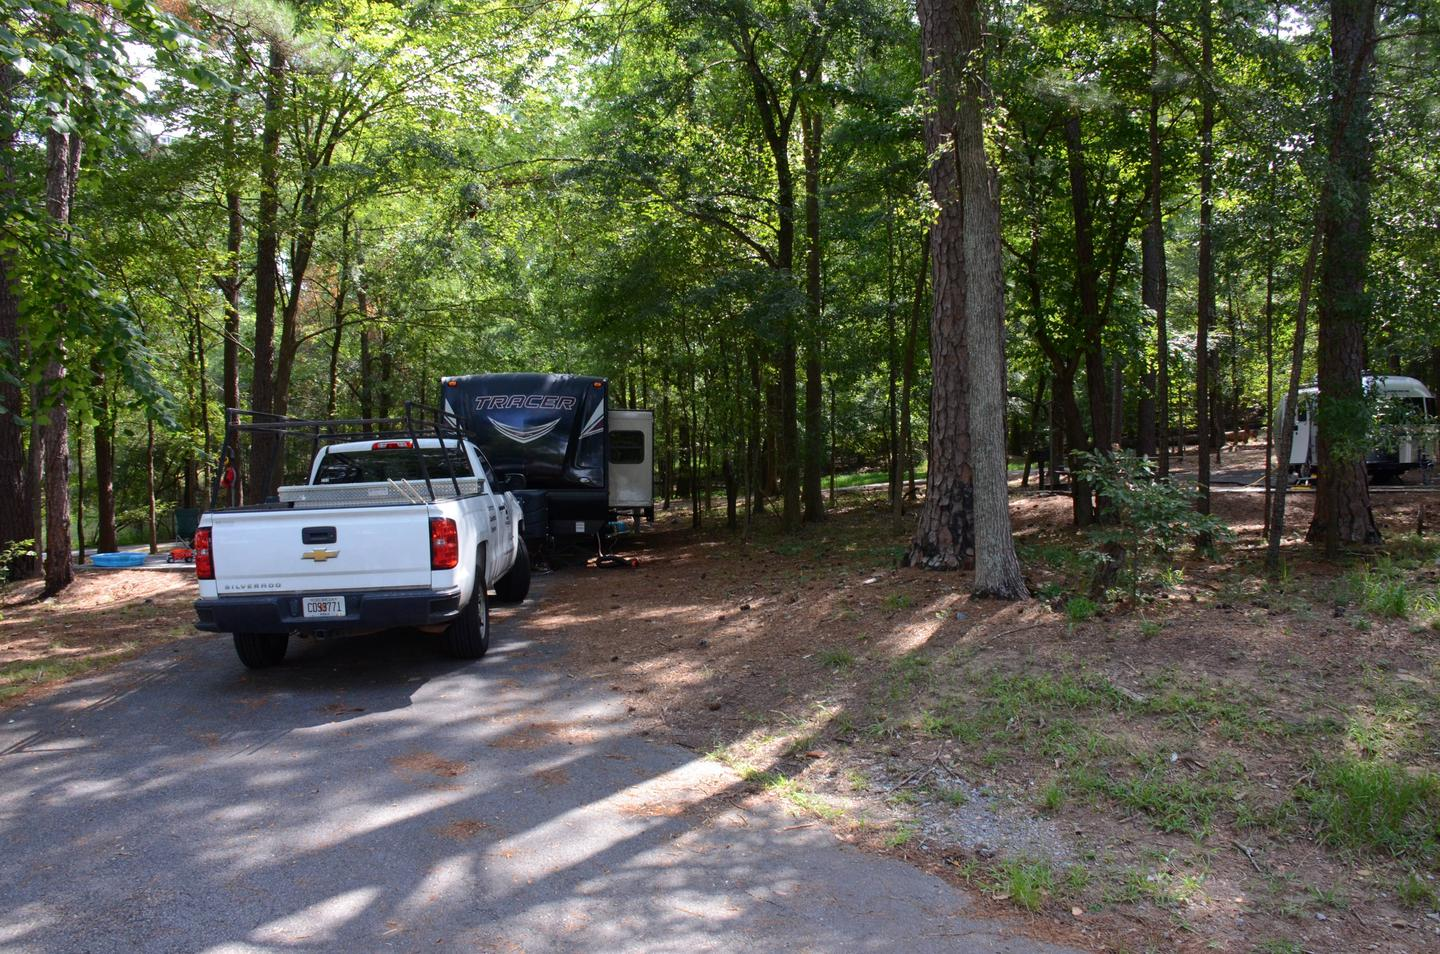 Pull-thru exit, driveway slope, utilities-side clearance.McKinney Campground, campsite 31.